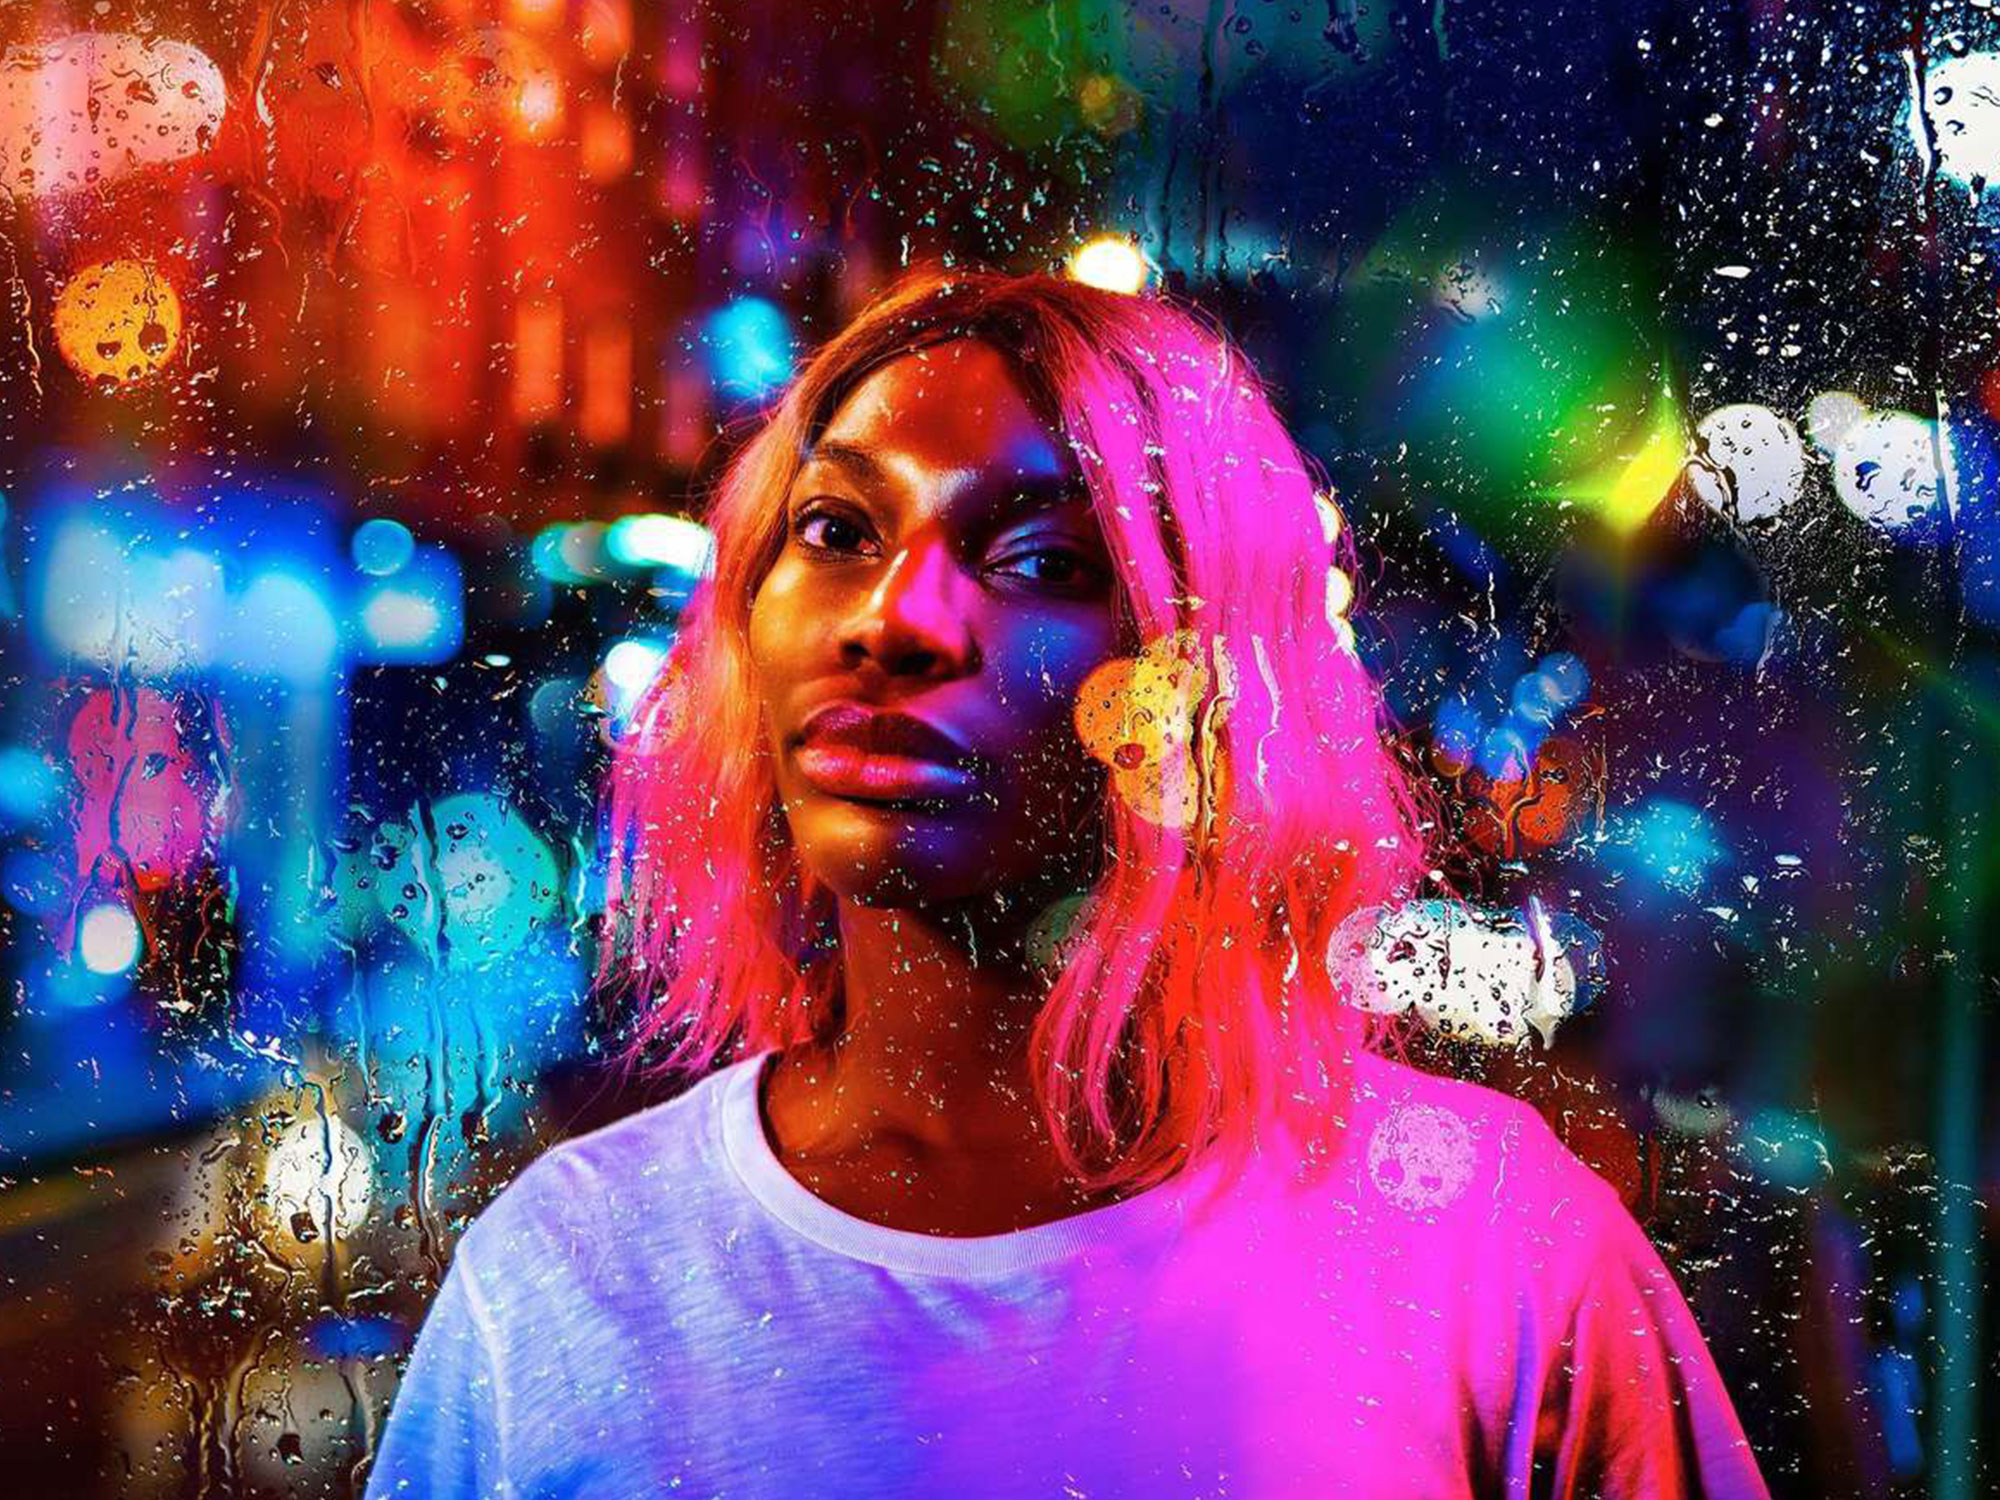 Michaela Coel in I May Destroy You (2020)